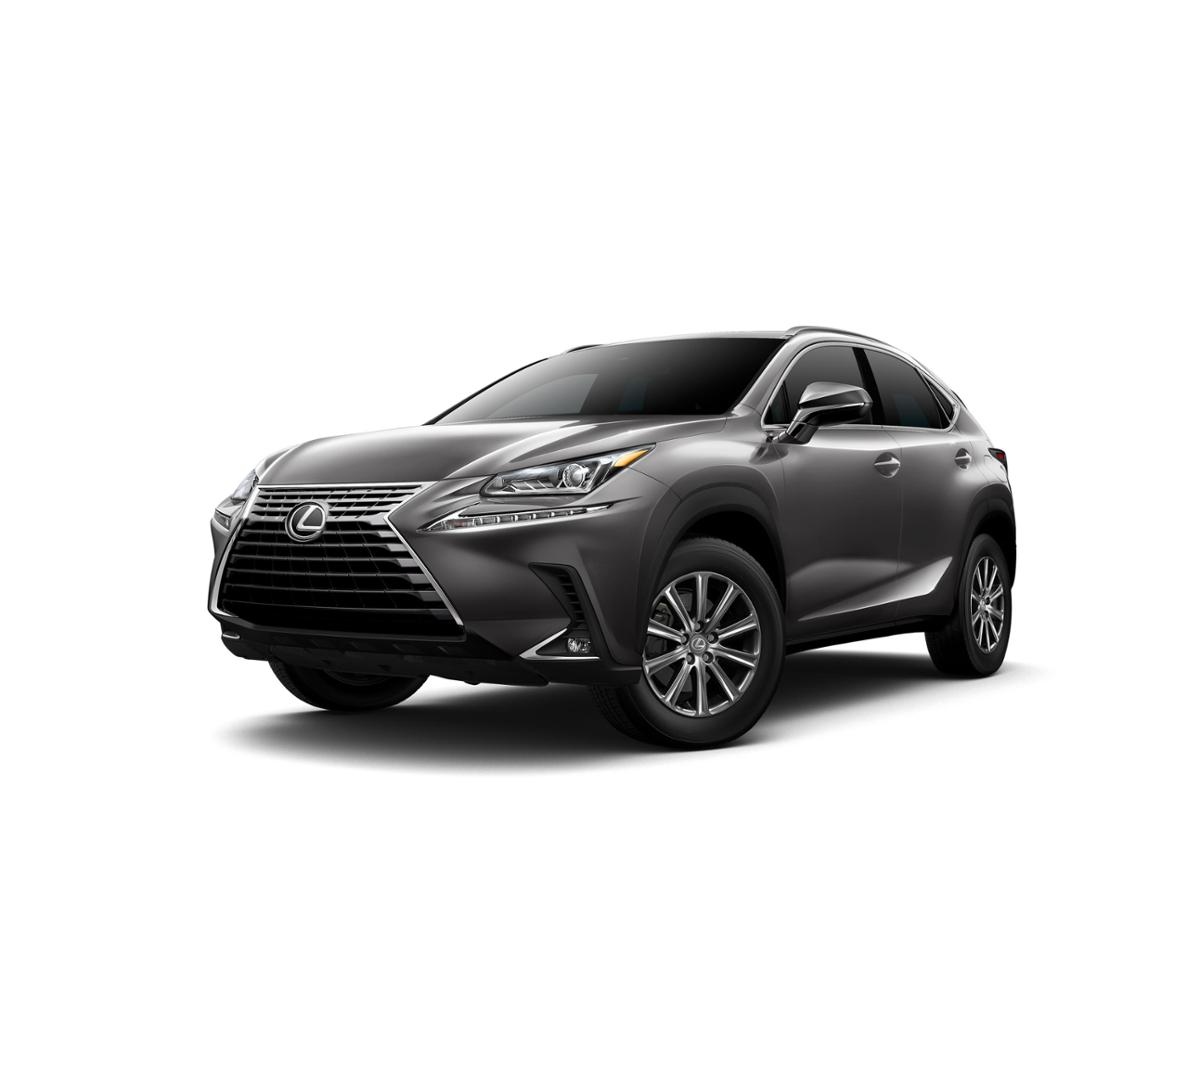 2019 Lexus NX 300 Vehicle Photo in Las Vegas, NV 89146